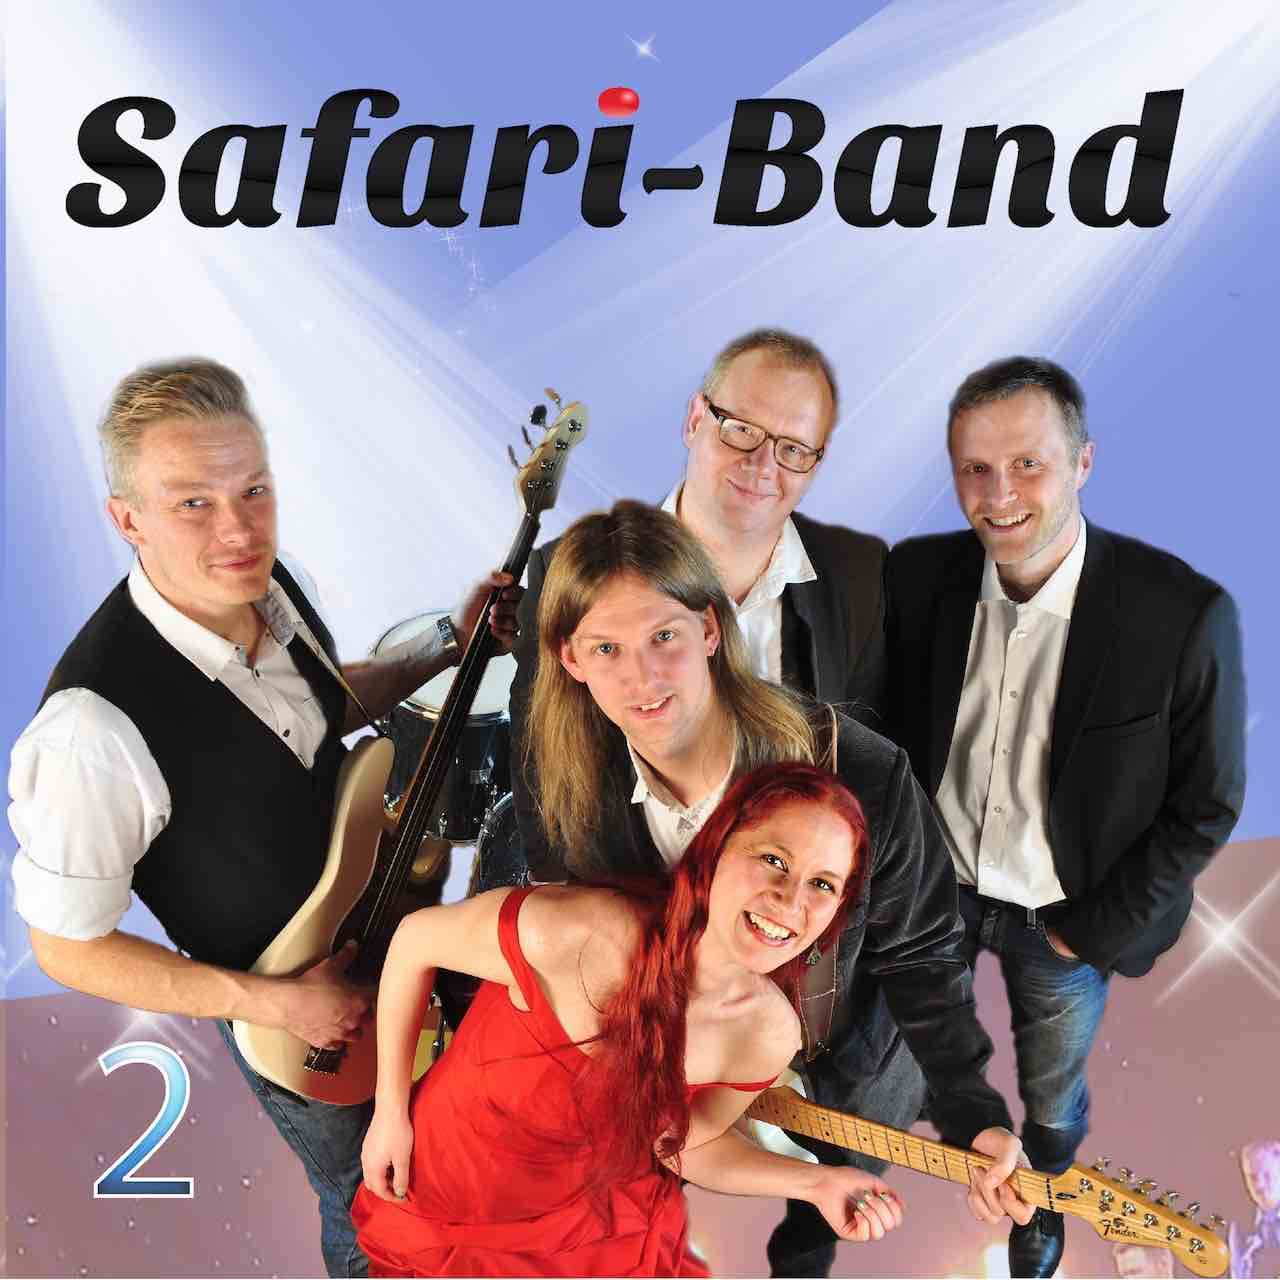 Safari-band Vol. 2